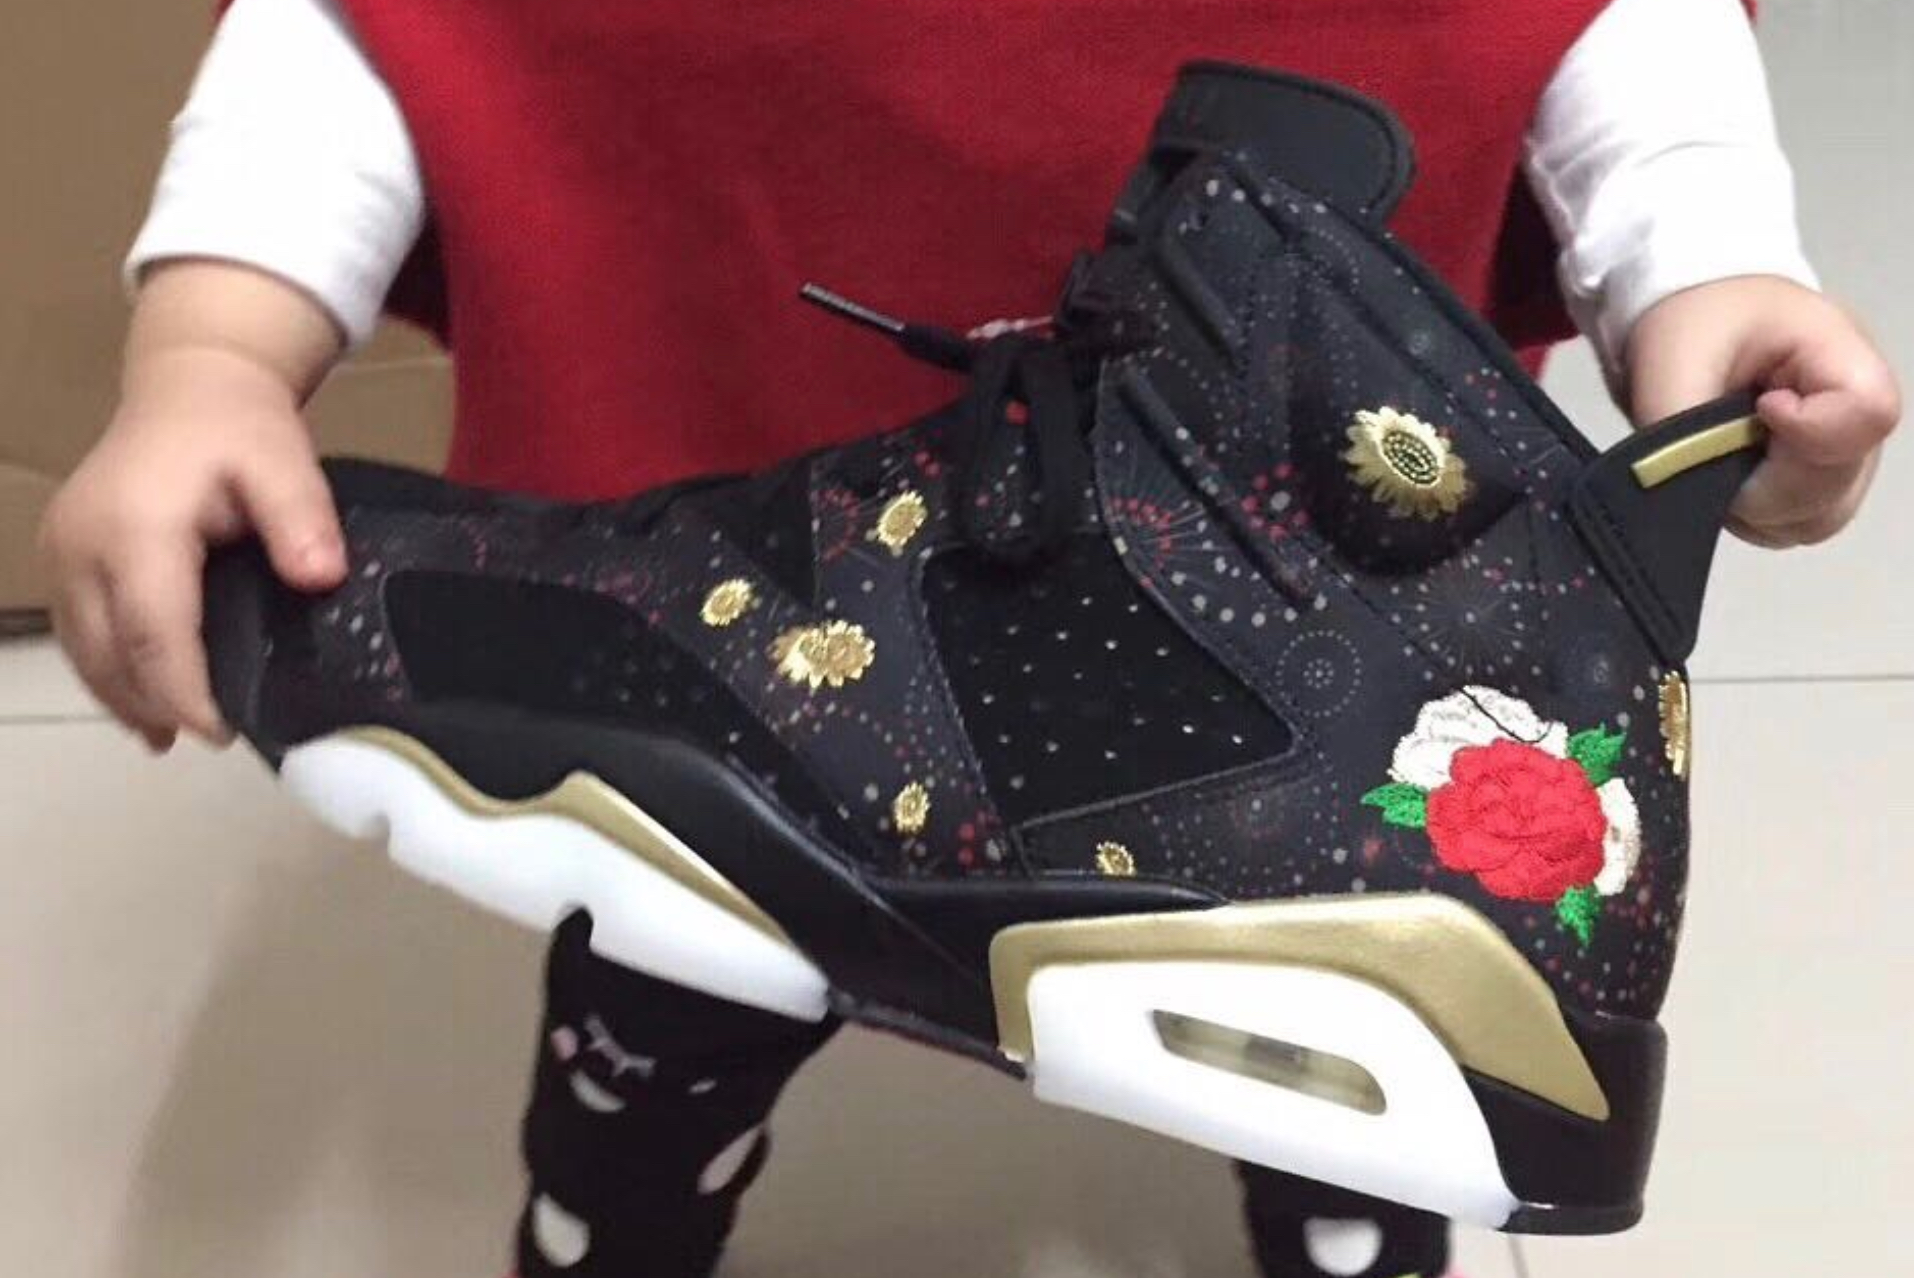 finest selection bafd9 4c438 First Look at the Air Jordan 6 Retro 'Chinese New Year ...